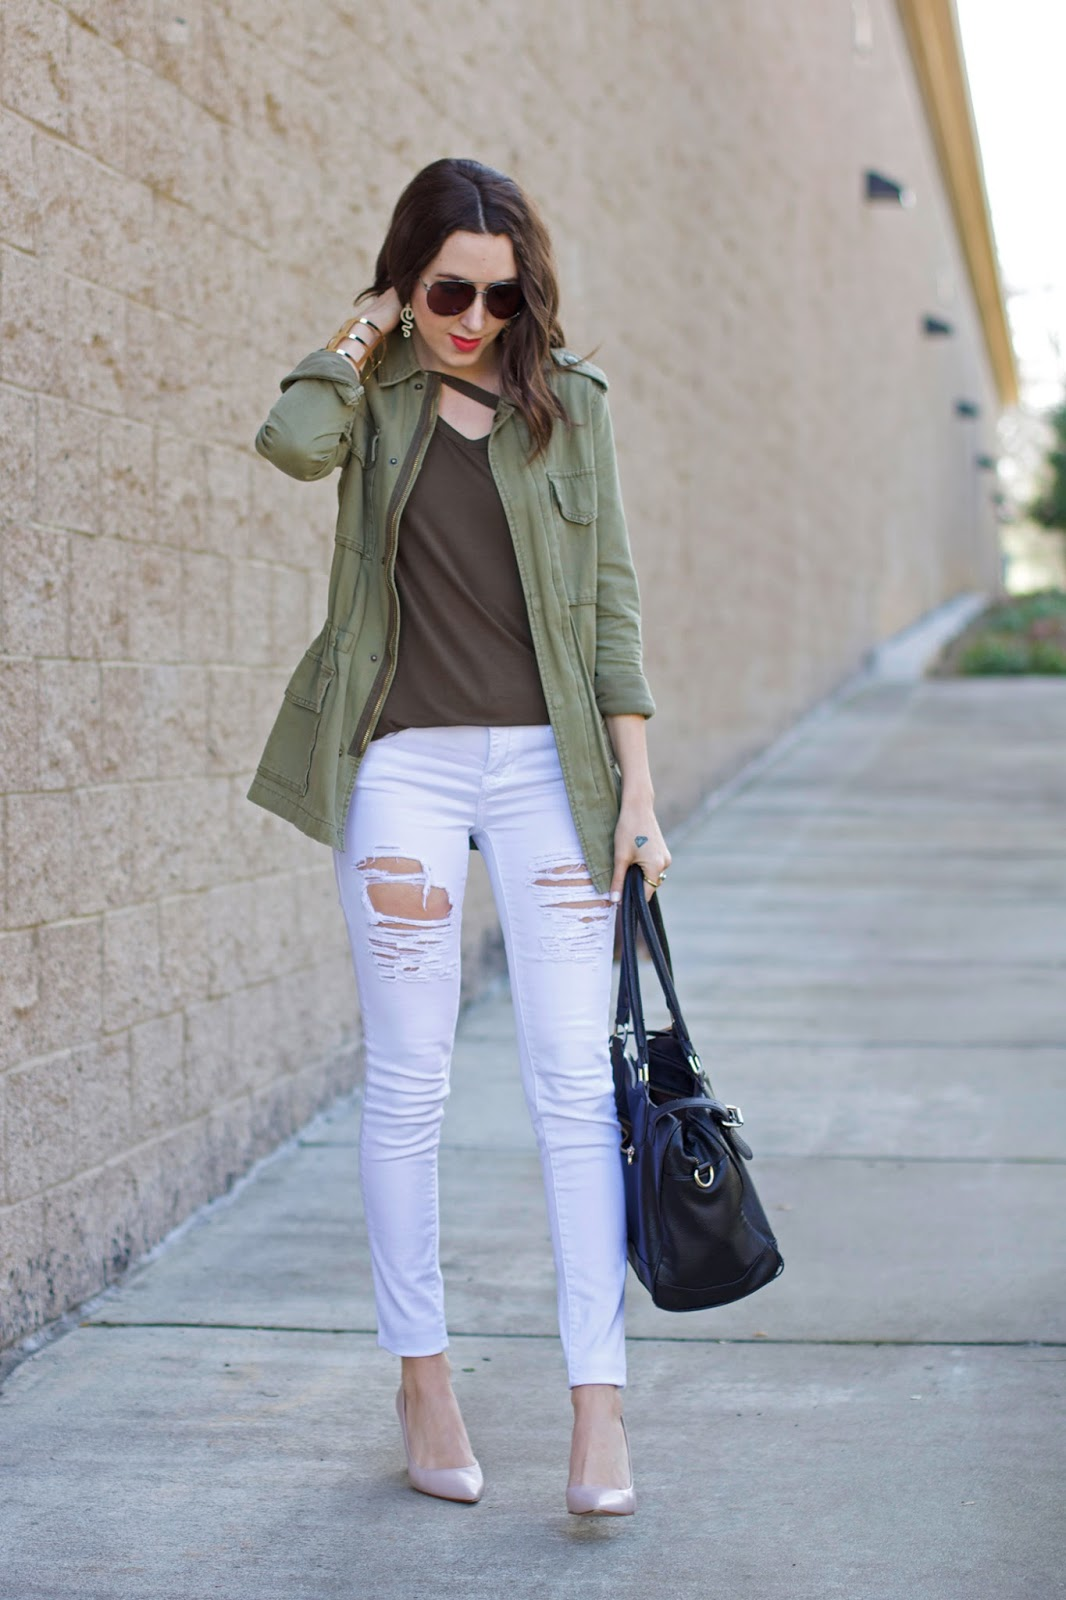 white-jeans-olive-green-jacket